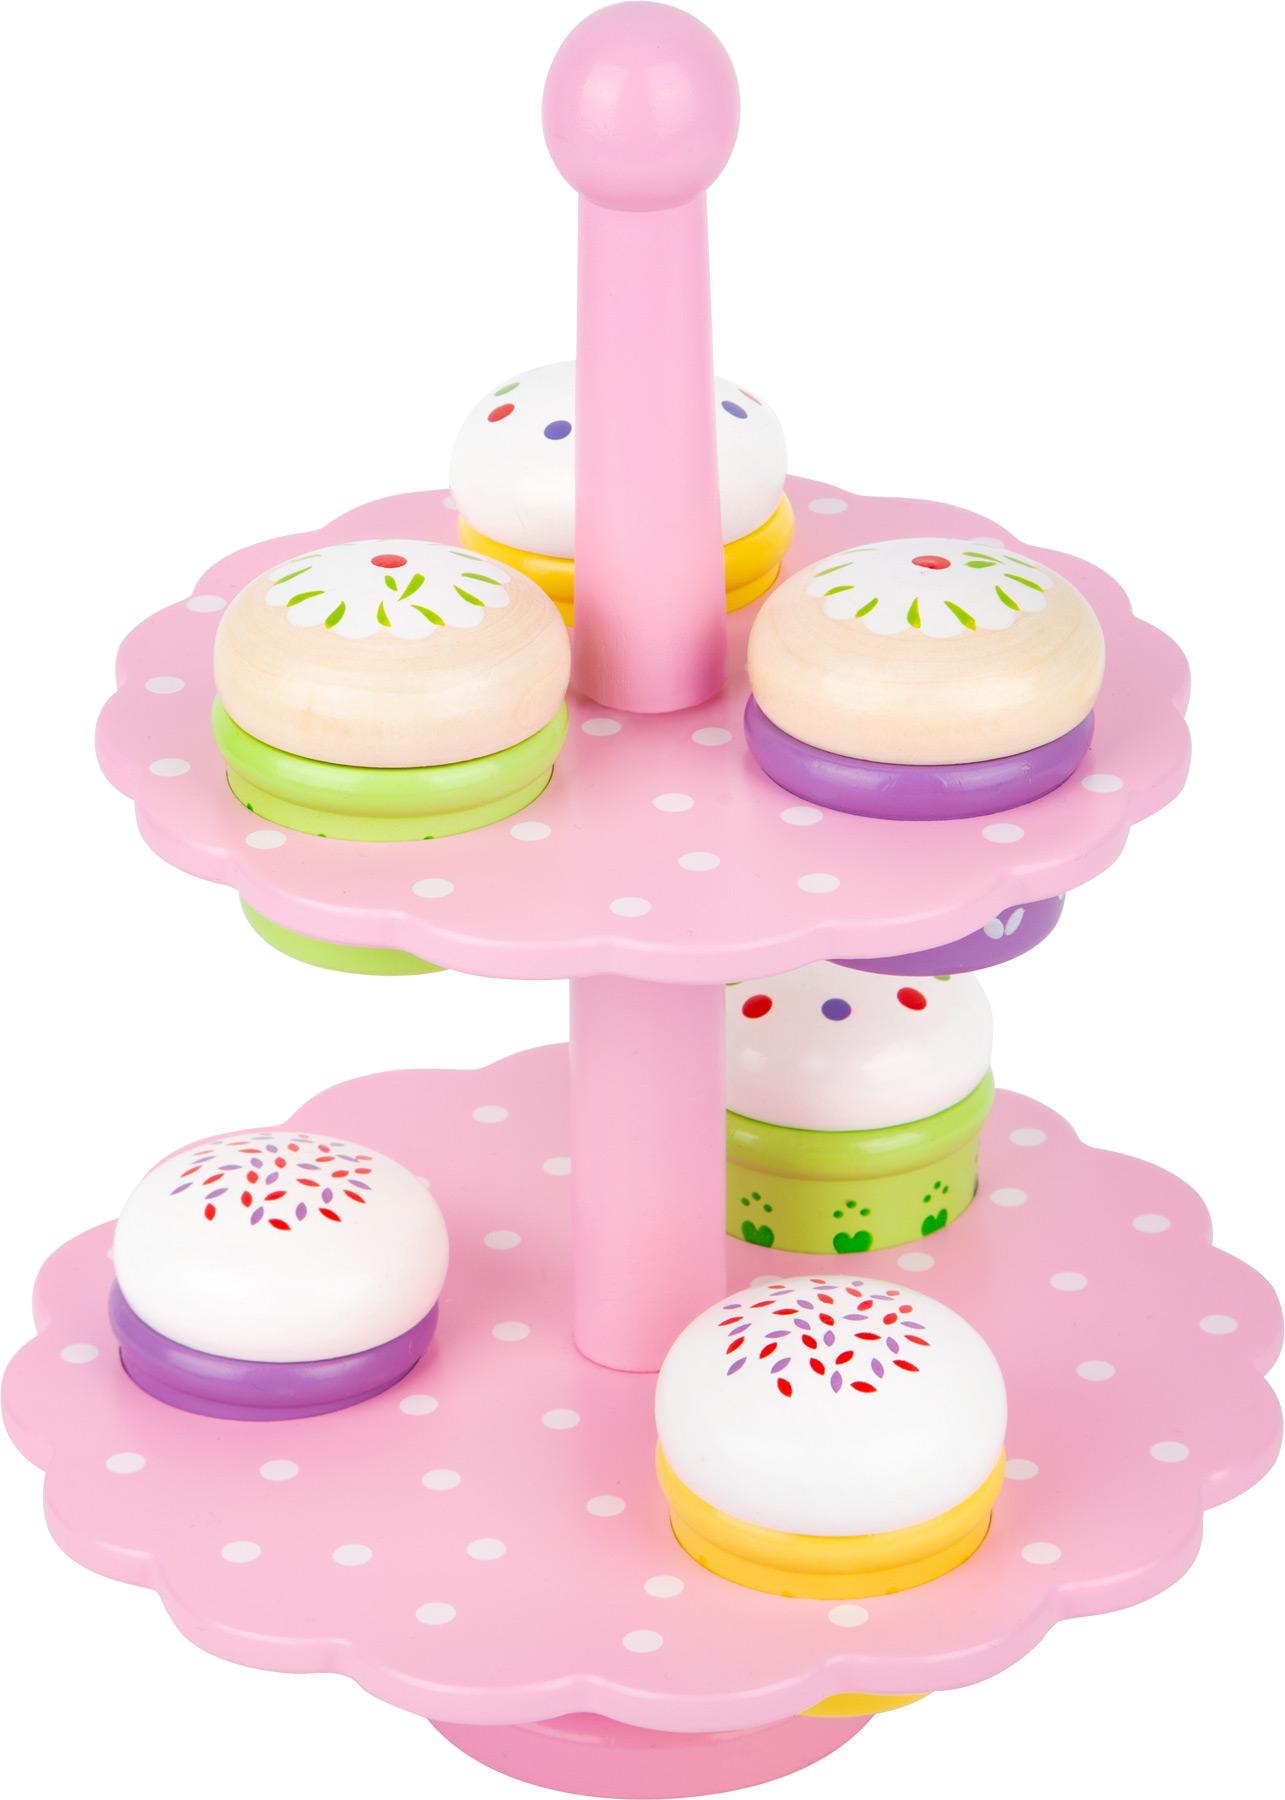 small foot company - Etagere für Muffins und Cupcakes